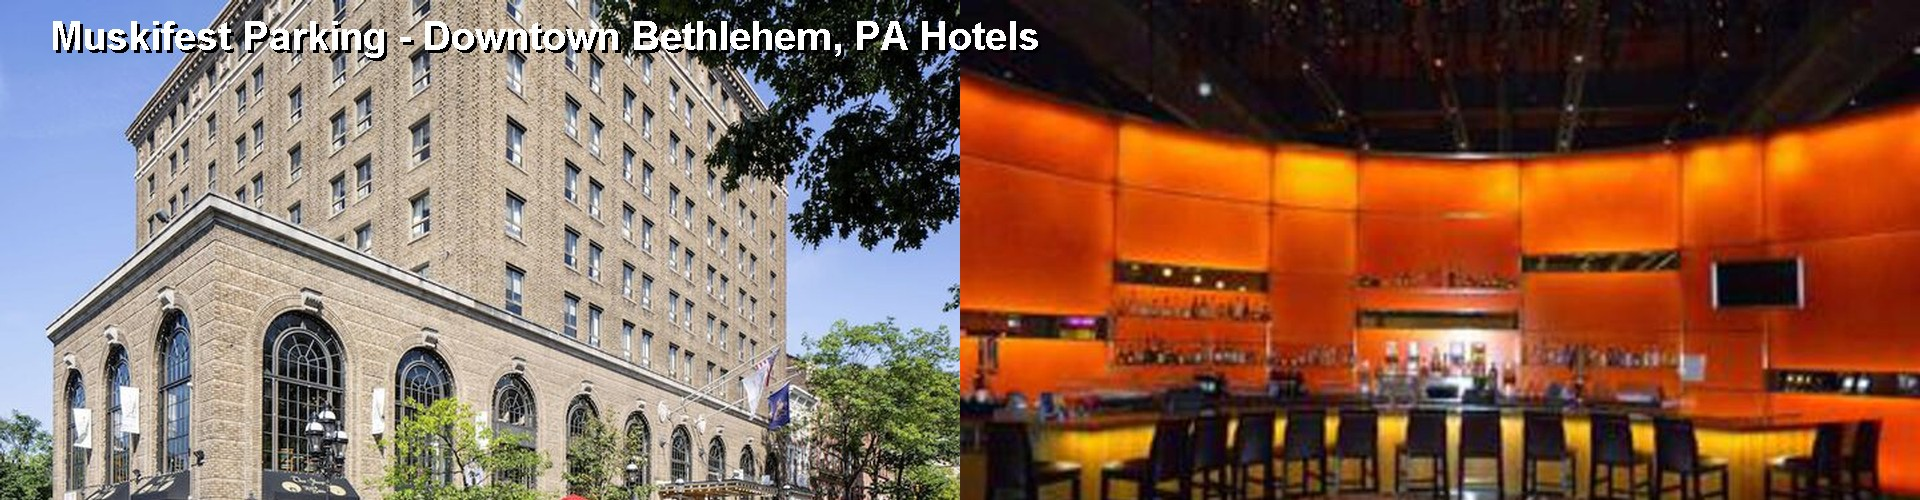 5 Best Hotels near Muskifest Parking - Downtown Bethlehem, PA